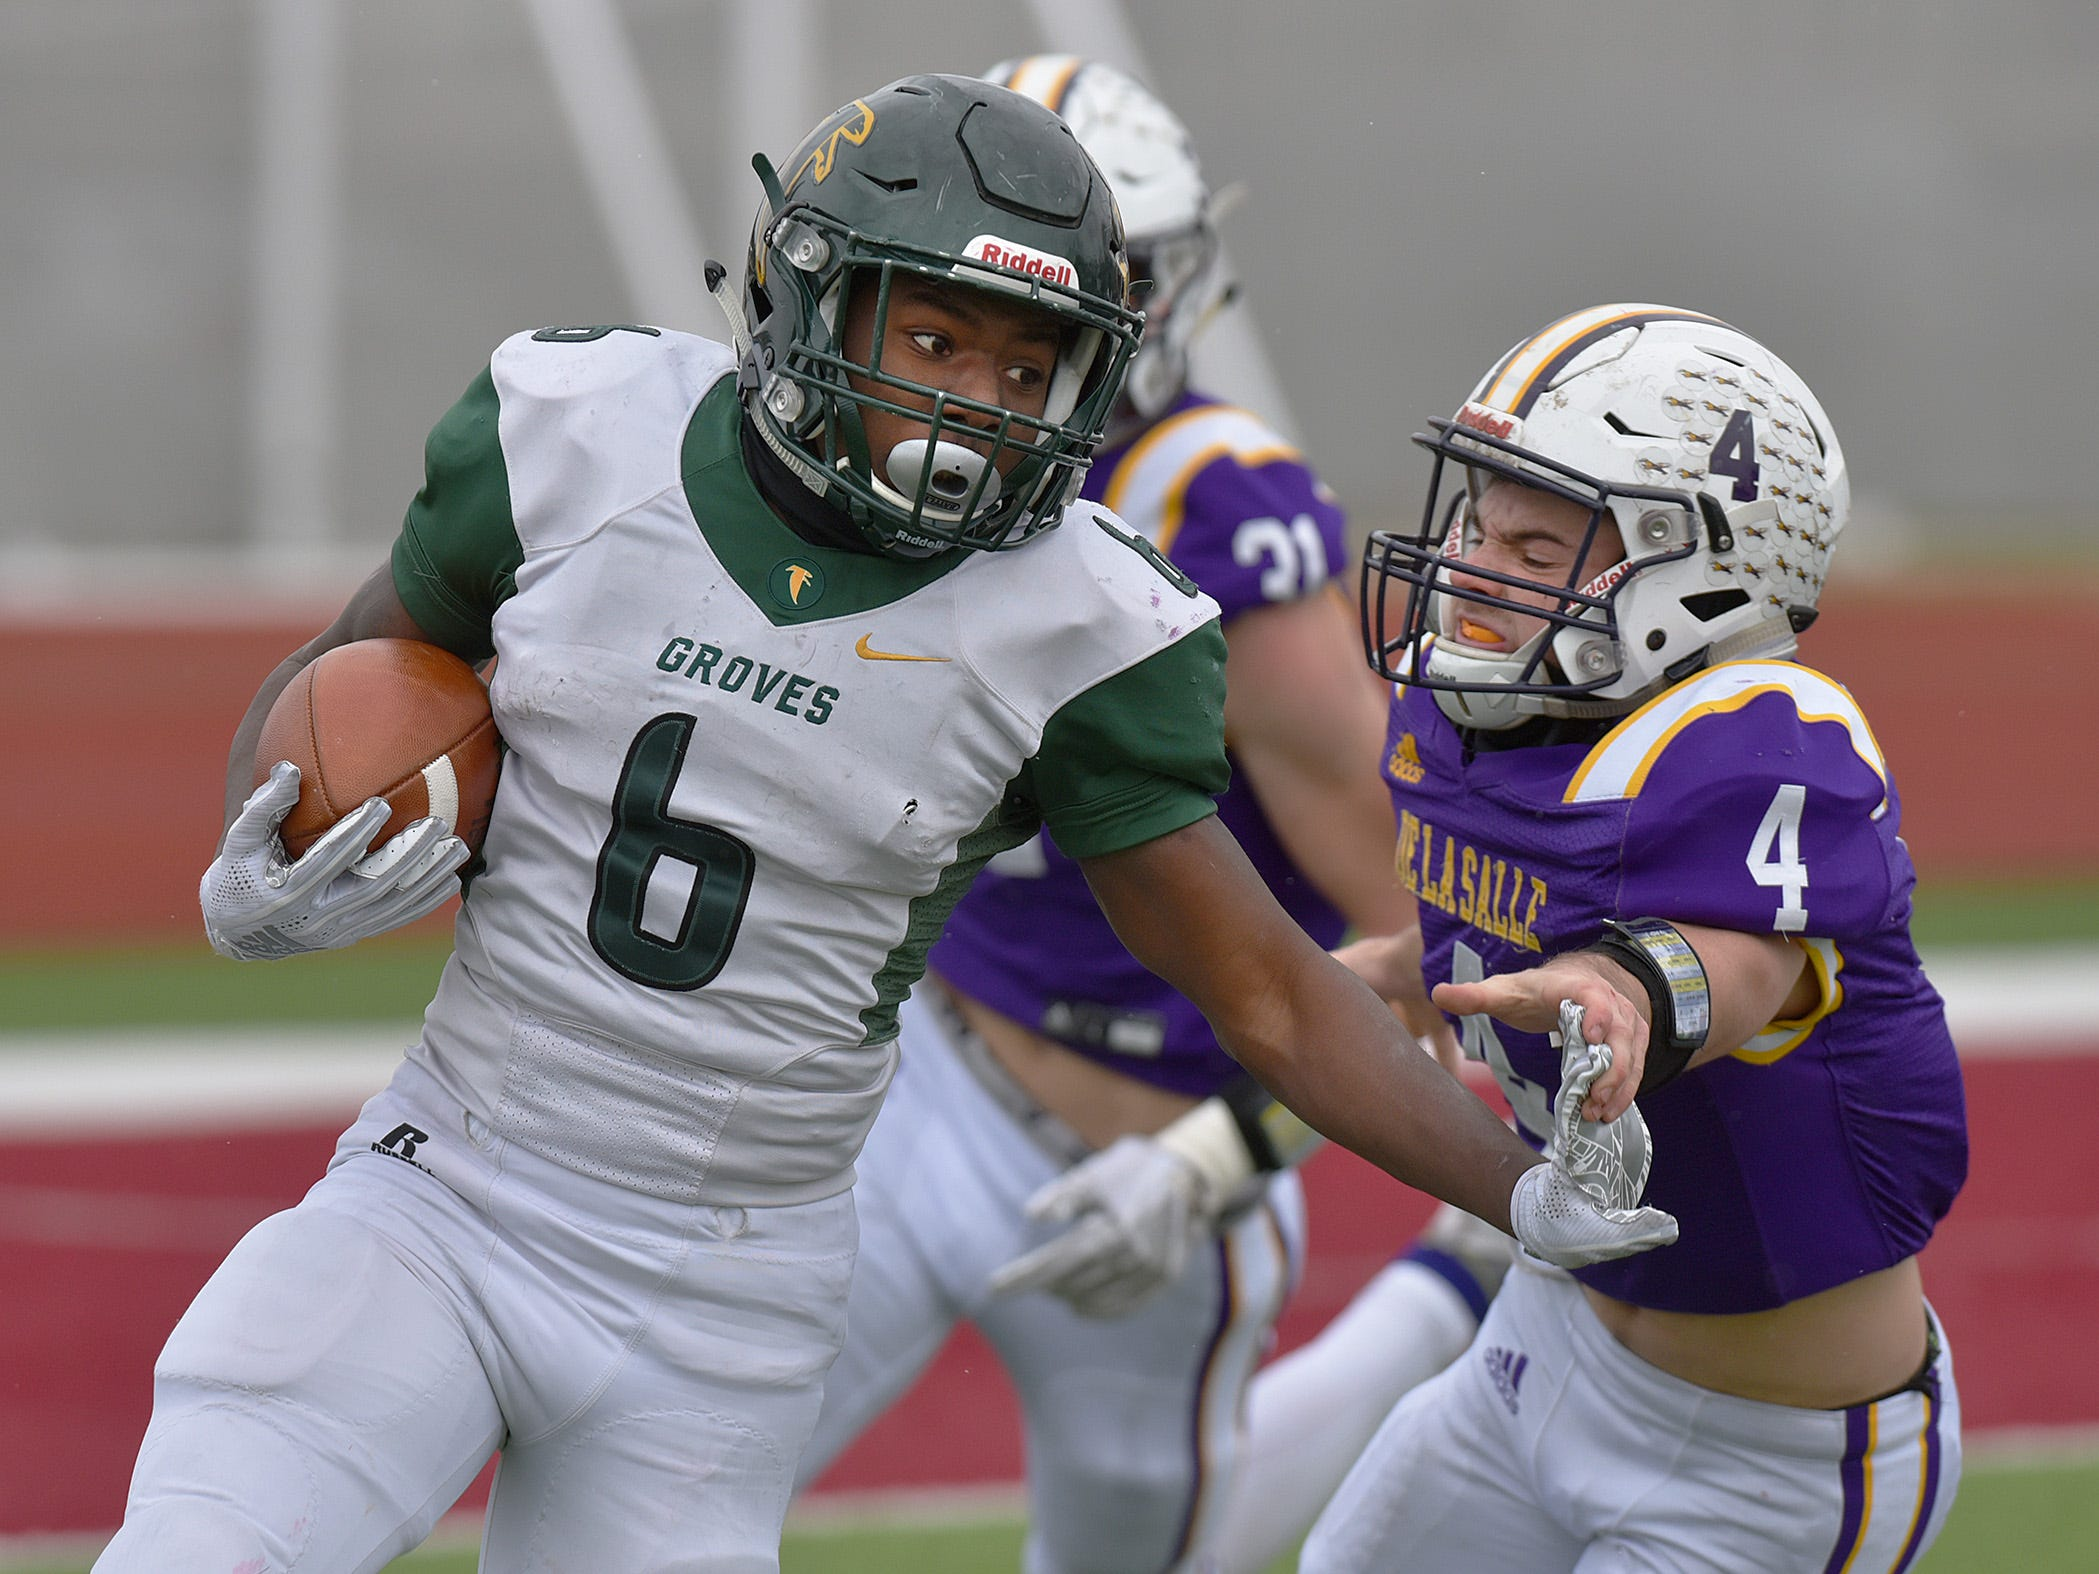 Birmingham Groves football falls to DeLaSalle in semifinals